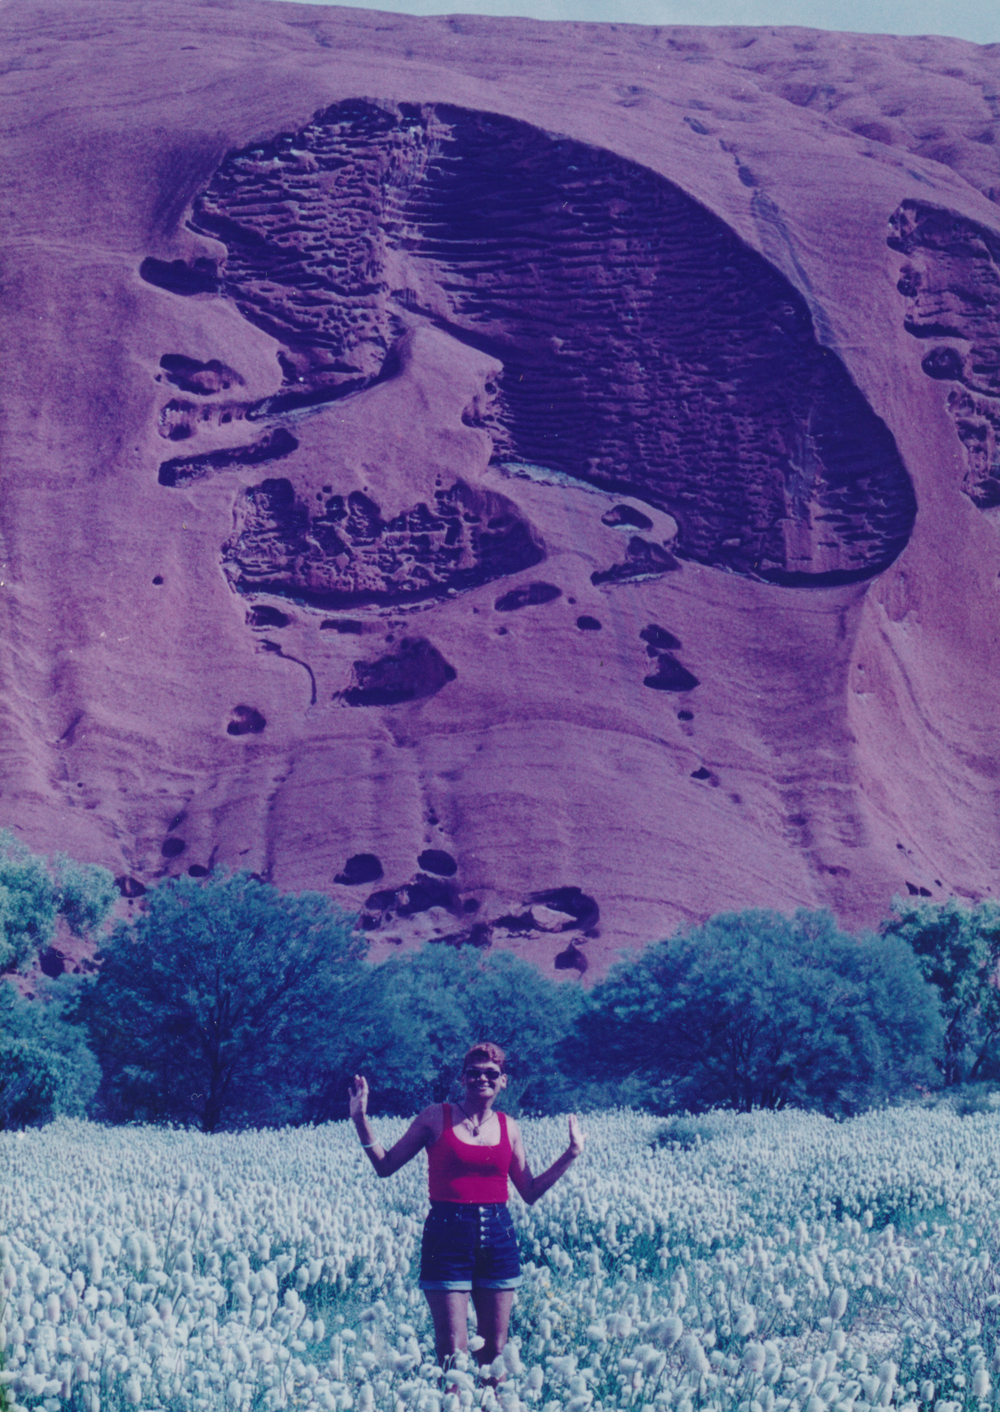 Laurel, the only Aboriginal runner, at Uluru National Park. I was fortunate to have her as part of my team. She was always warm and cheerful.